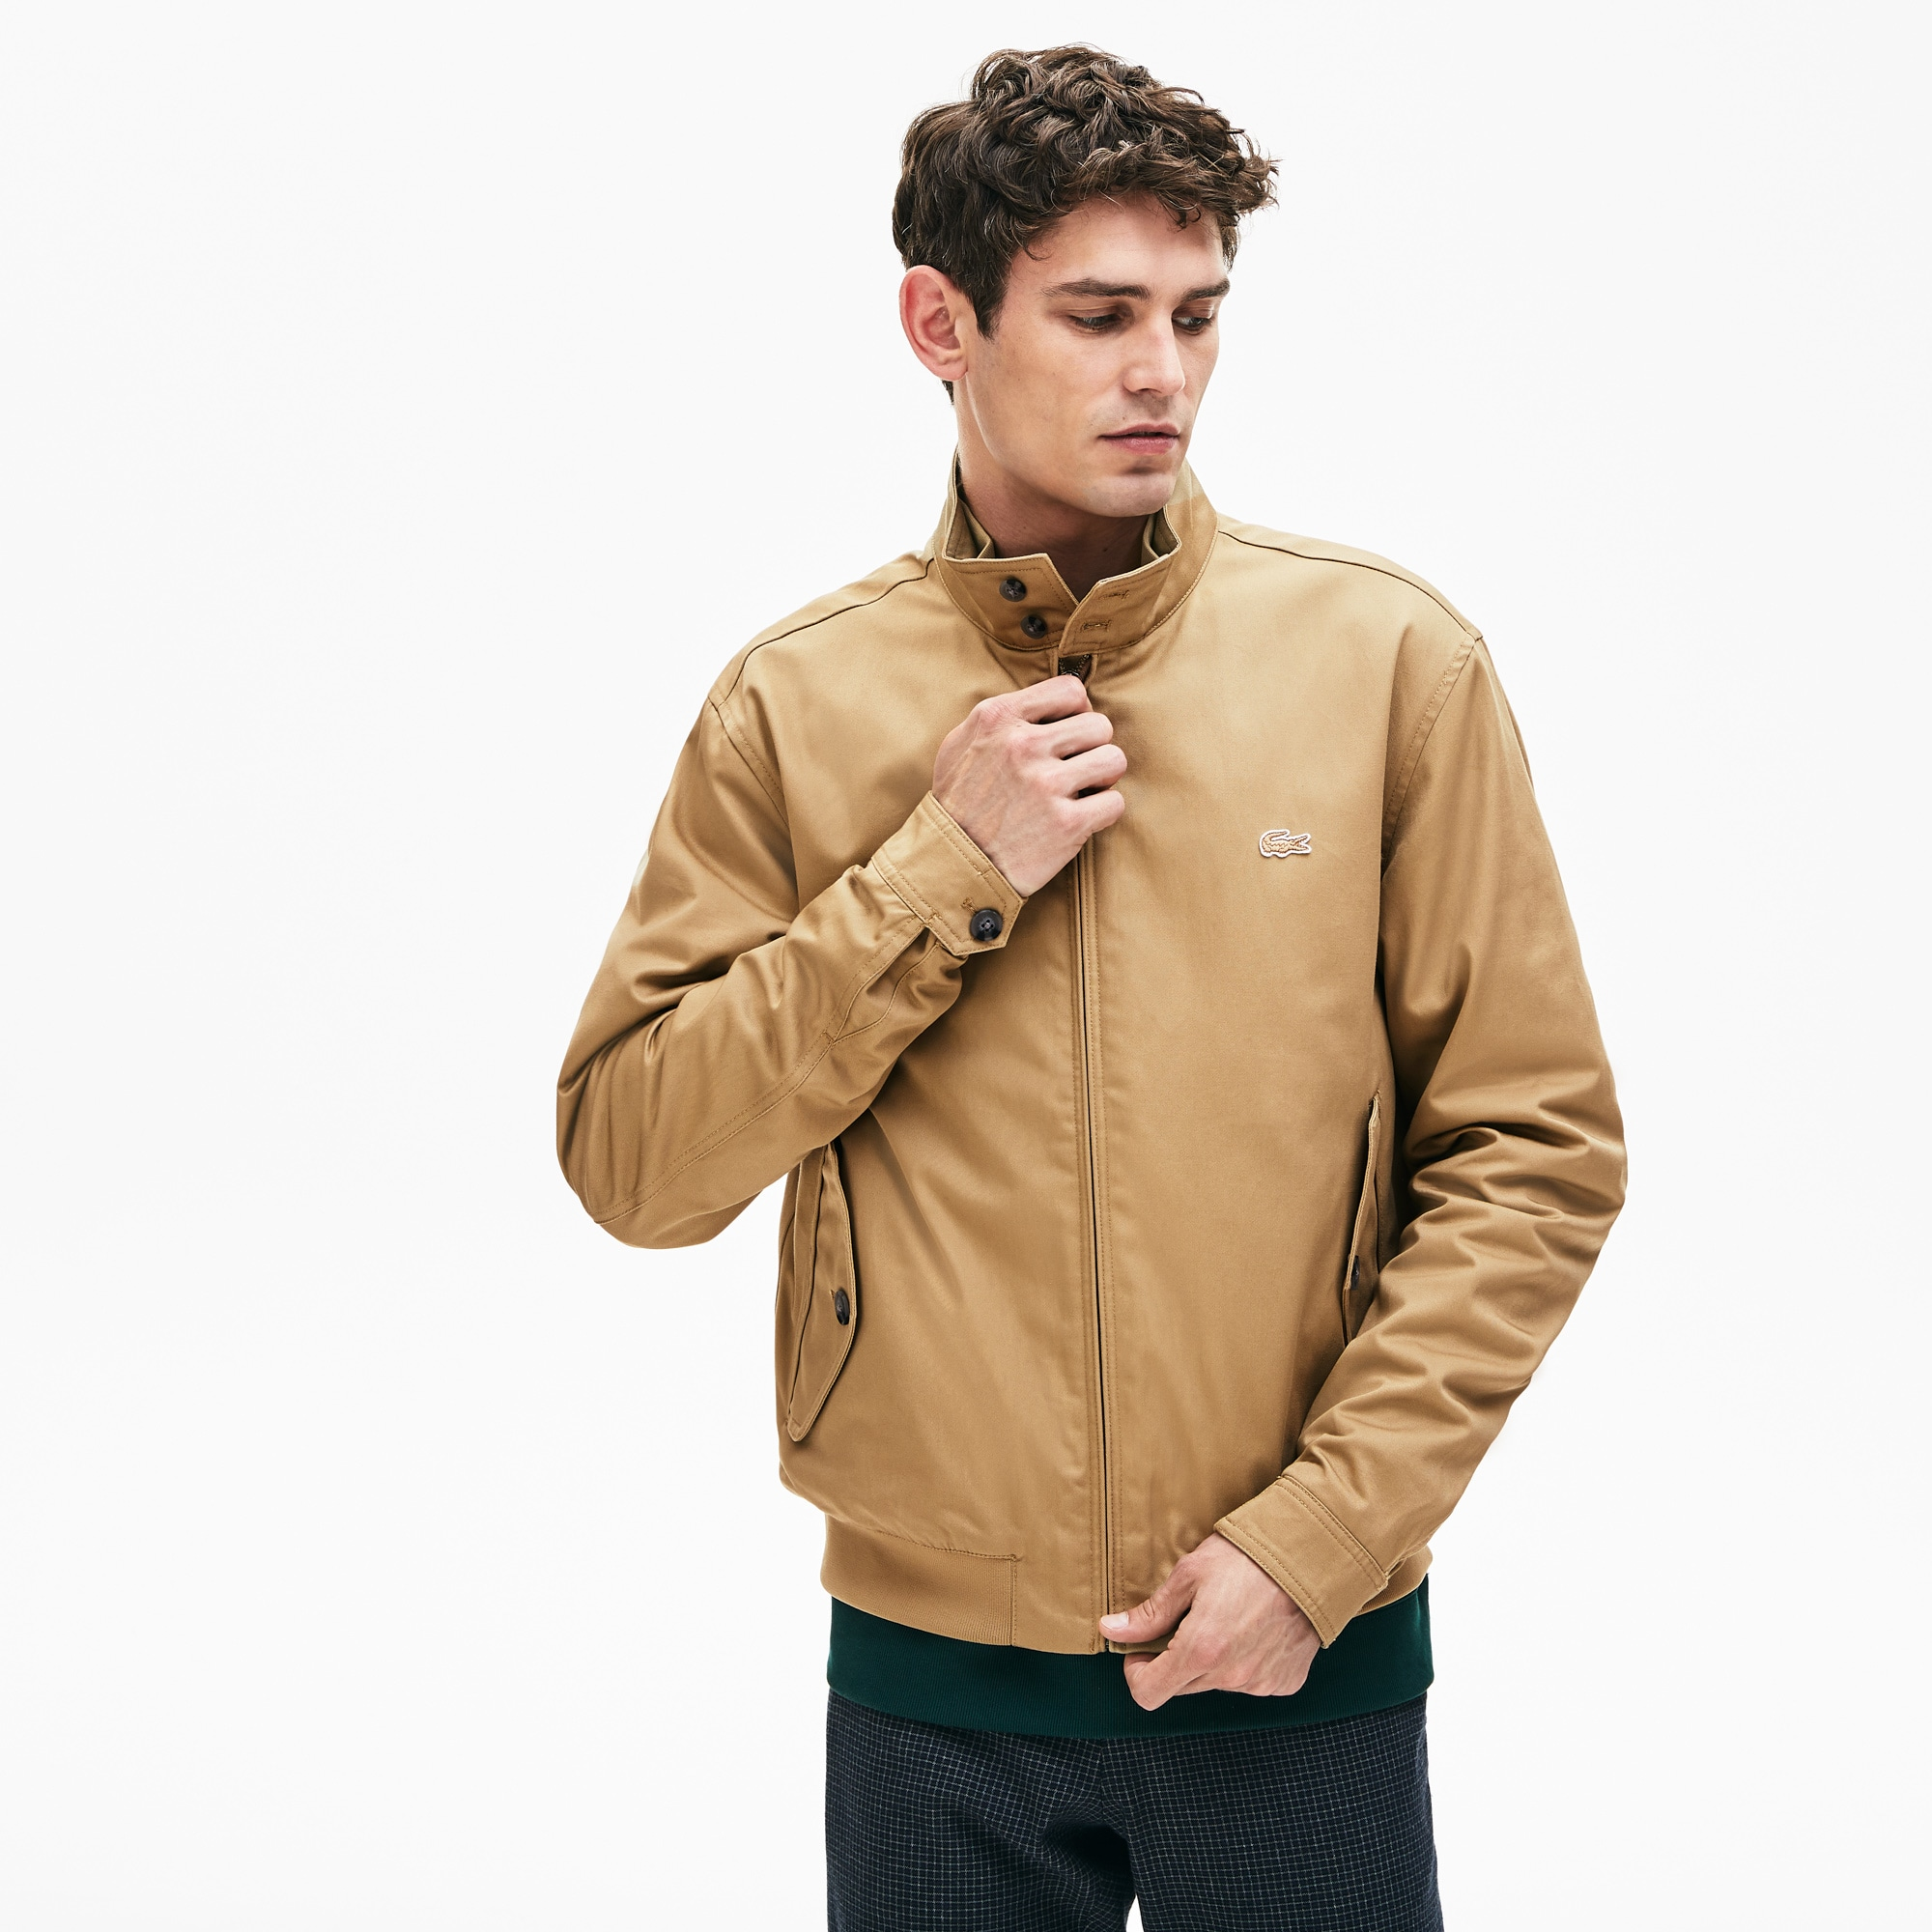 Men's Cotton Twill Jacket